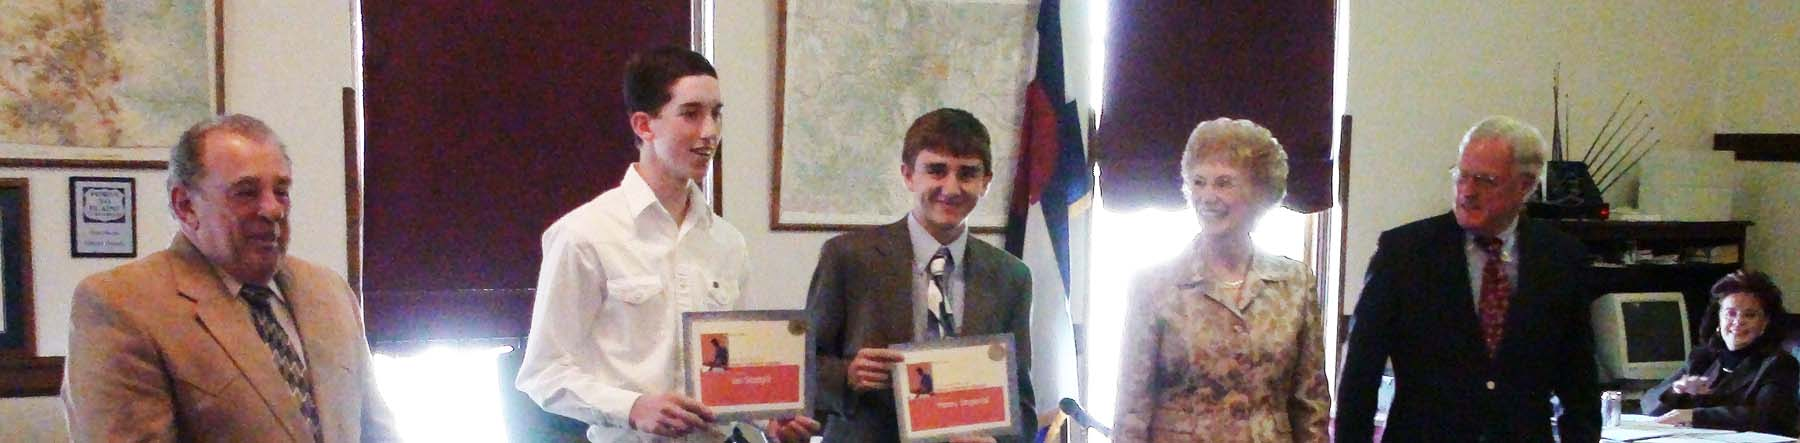 Ian and Henry receive commissioner award for essay contest